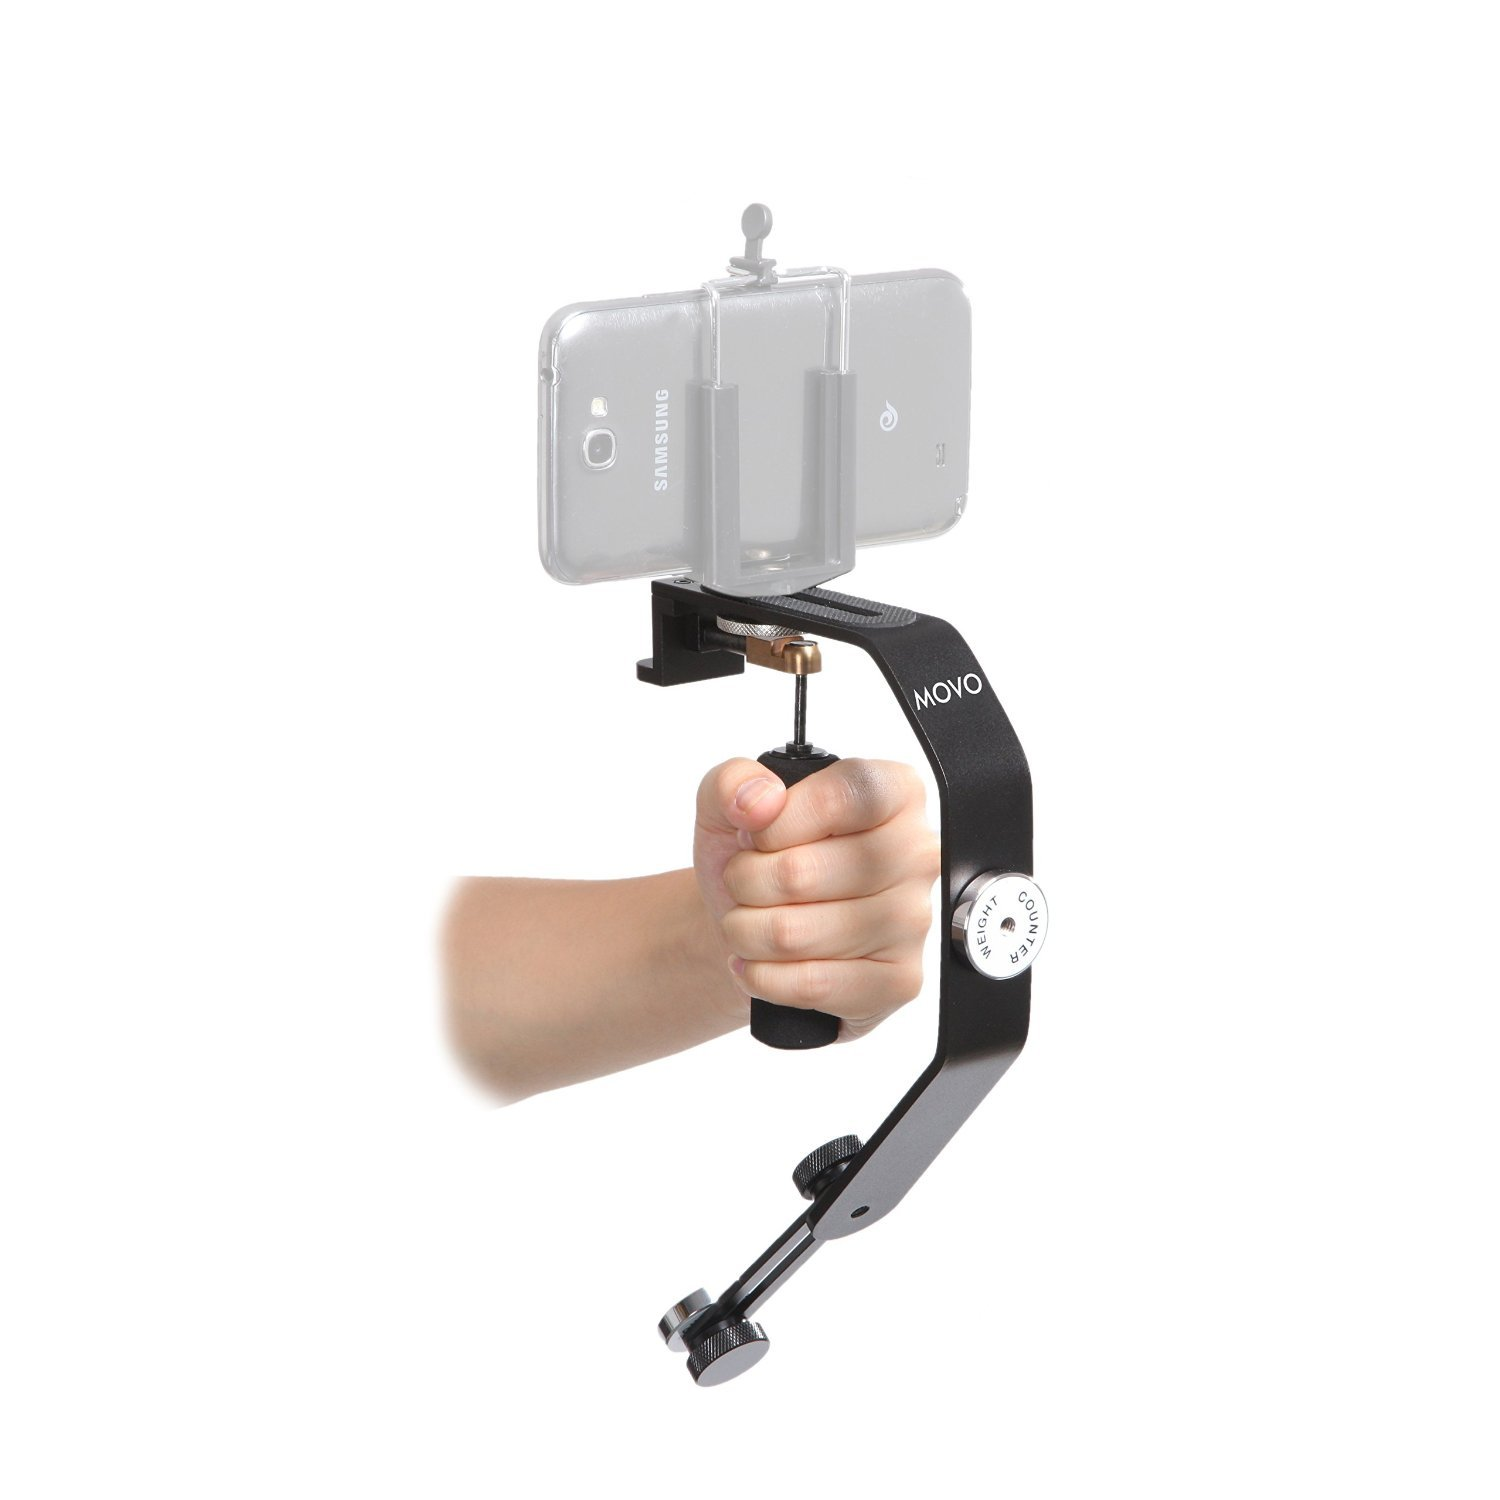 Movo VS01 SP Handheld Video Stabilisierungssystem Amazon Kamera